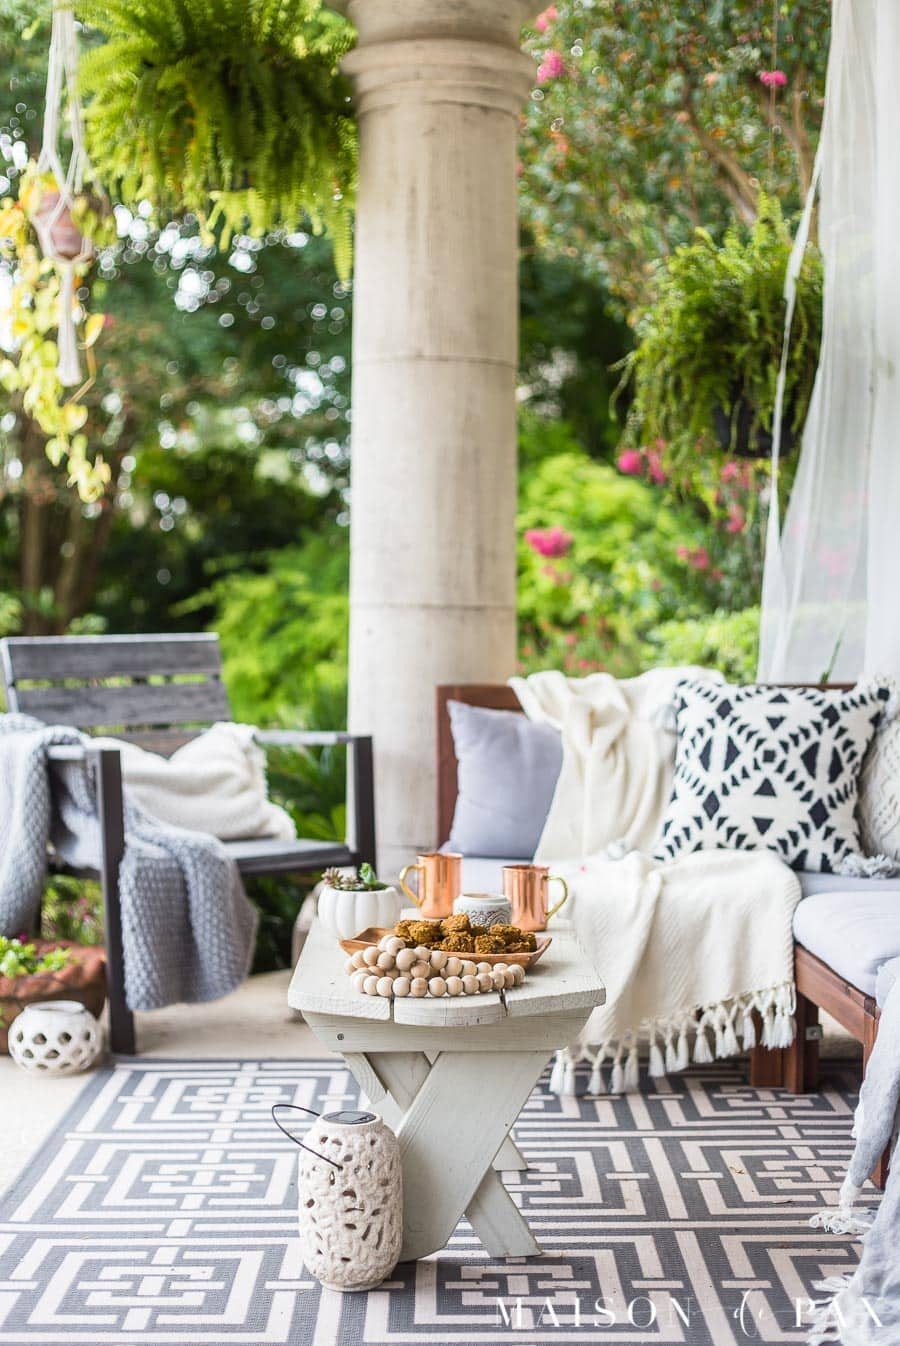 Black and White Fall Porch Decorating Ideas - Maison de Pax